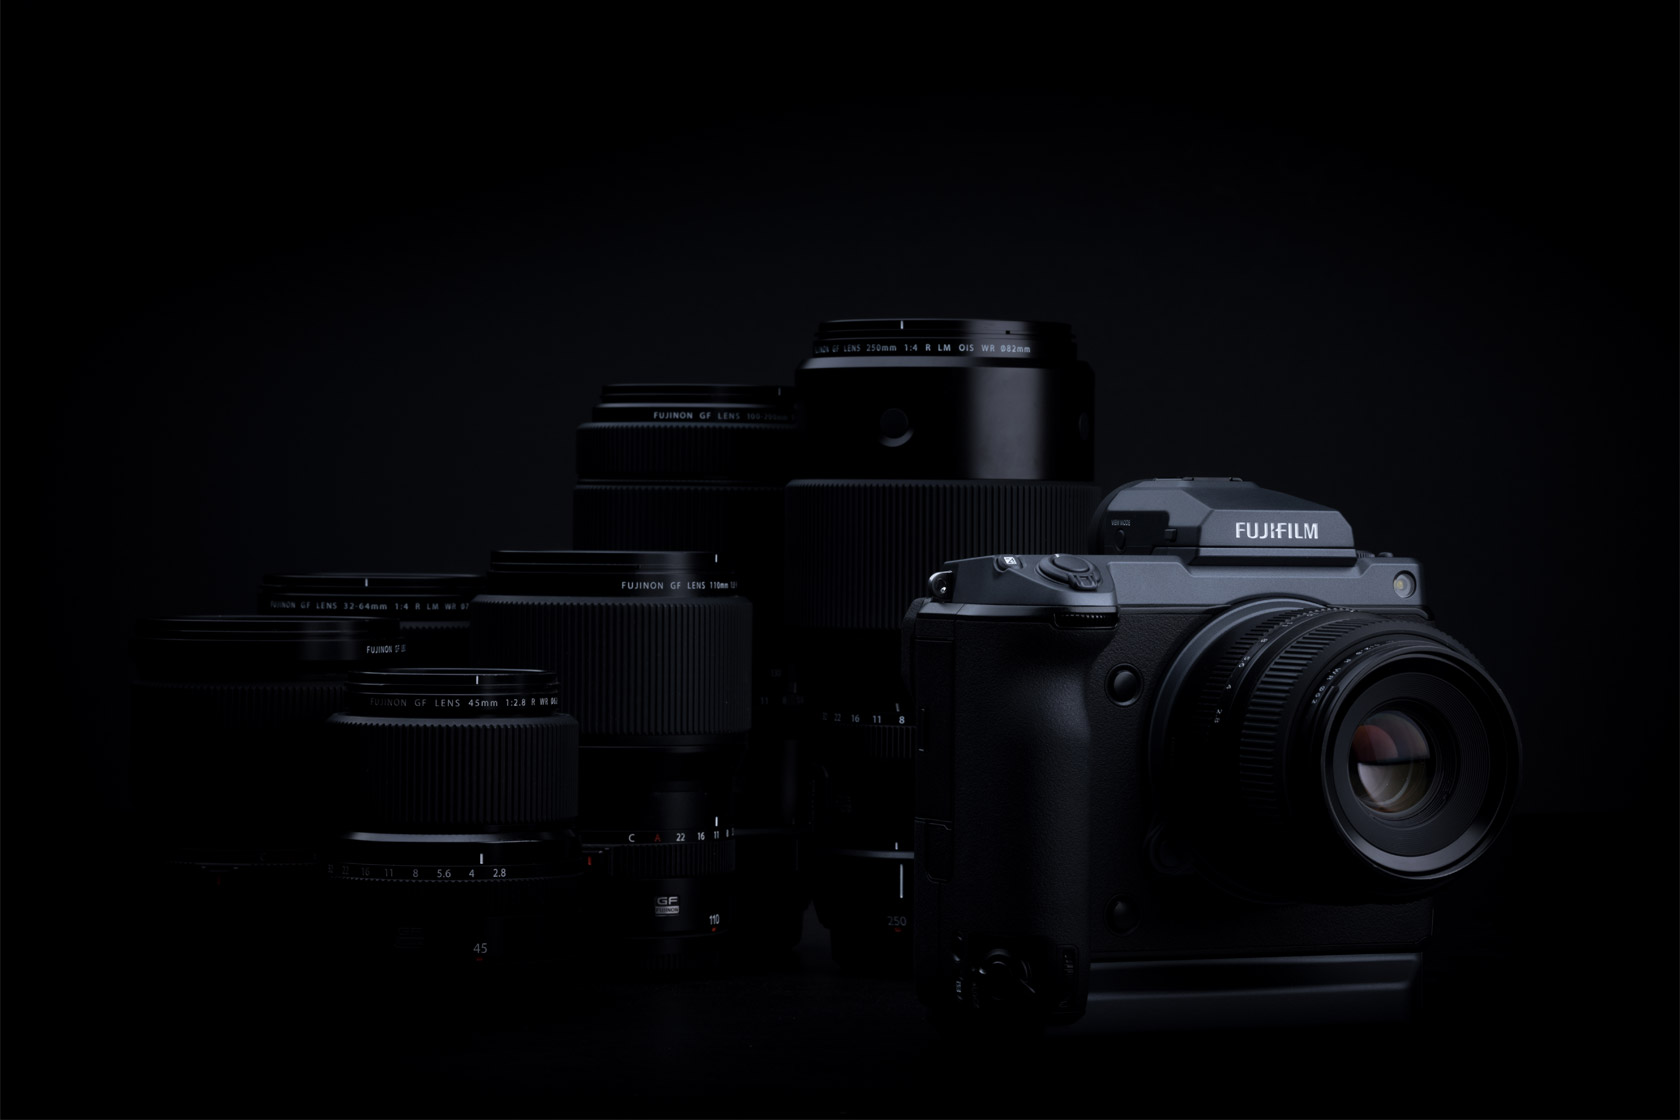 [photo] Fujifilm GFX camera in front of compatible lenses